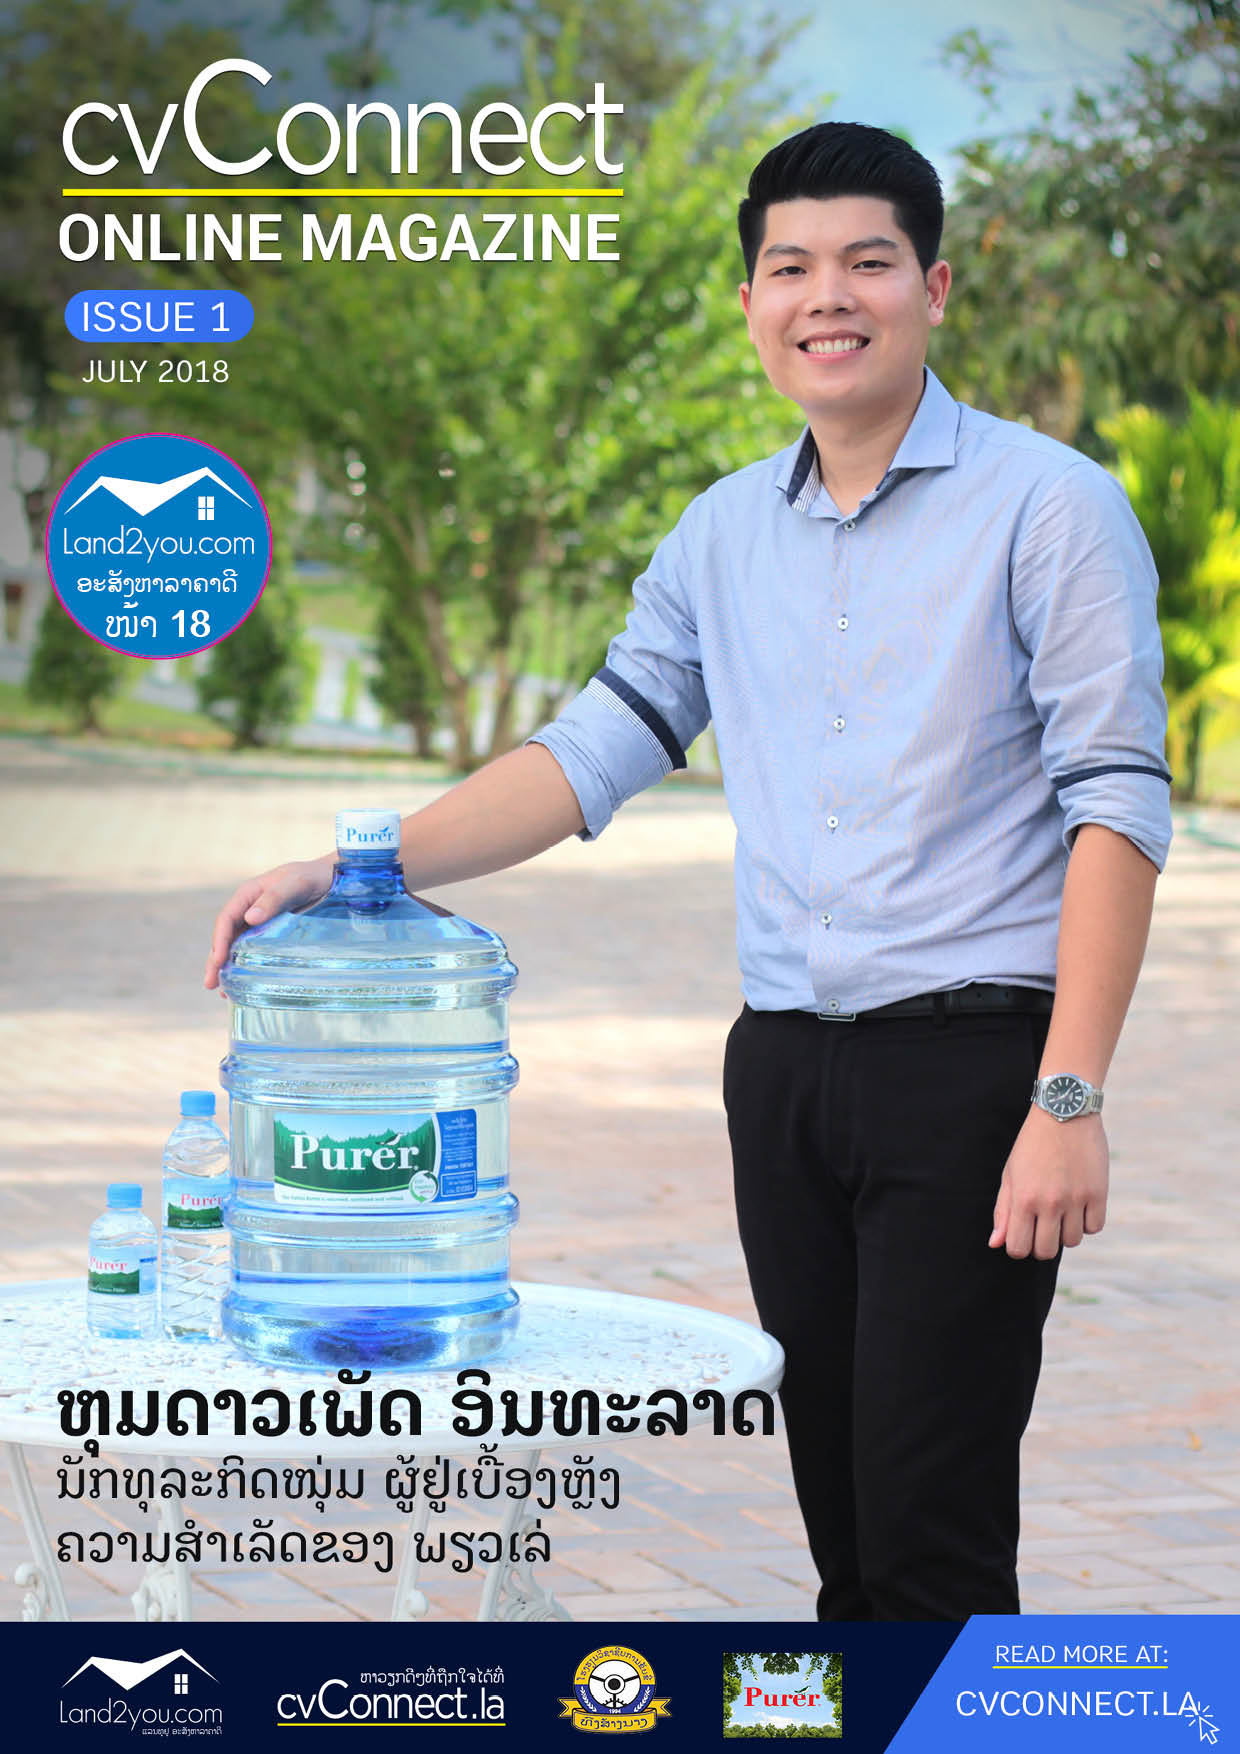 CVCONNECT ONLINE MAGAZINE ISSUE 1 - cvConnect Find Jobs in Laos